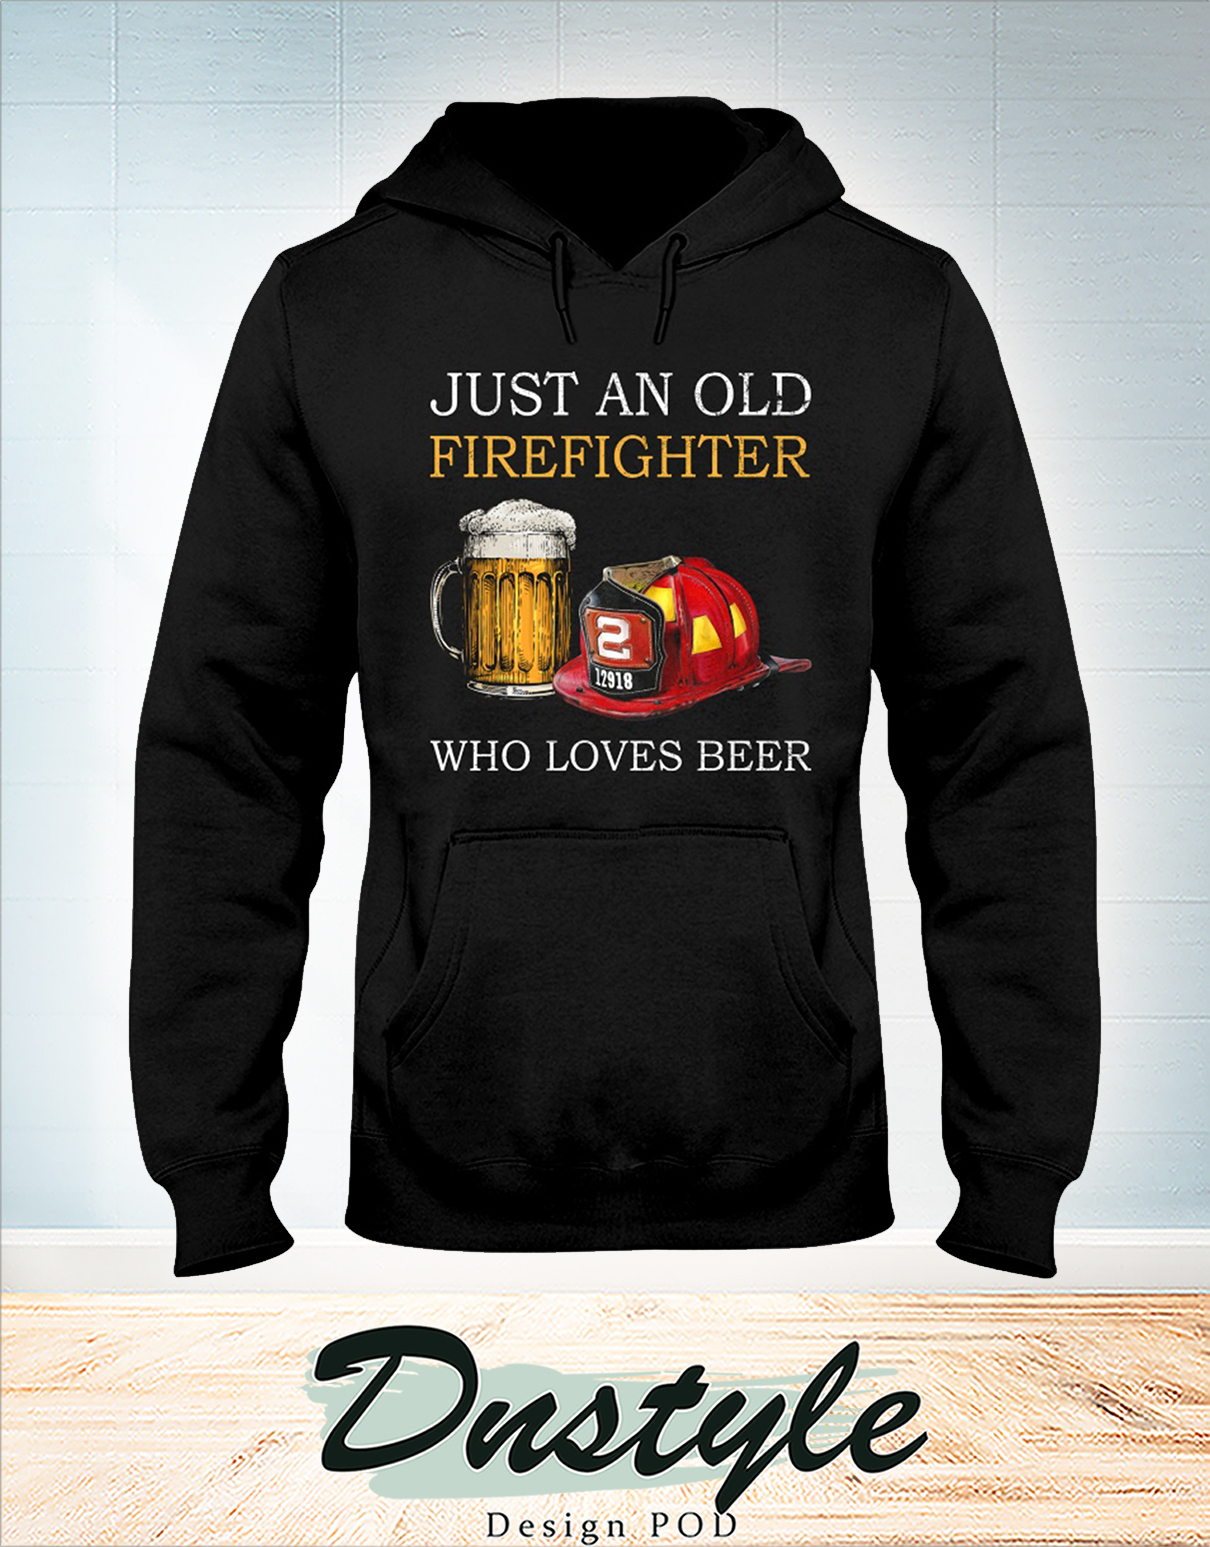 Just an old firefighter who loves beer hoodie